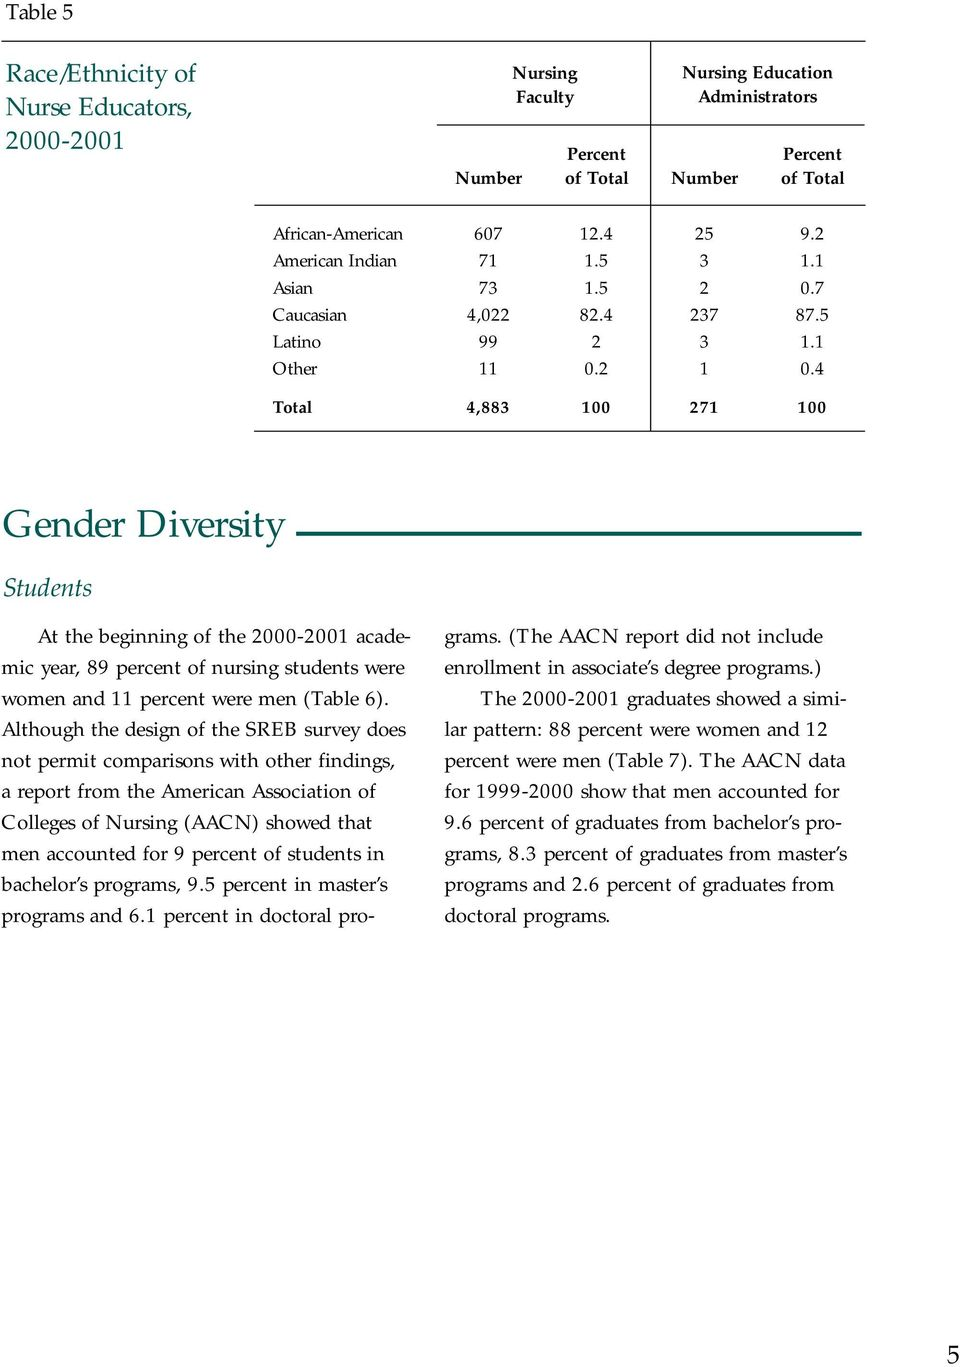 4 Total 4,883 100 271 100 Gender Diversity Students At the beginning of the 2000-2001 academic year, 89 percent of nursing students were women and 11 percent were men (Table 6).